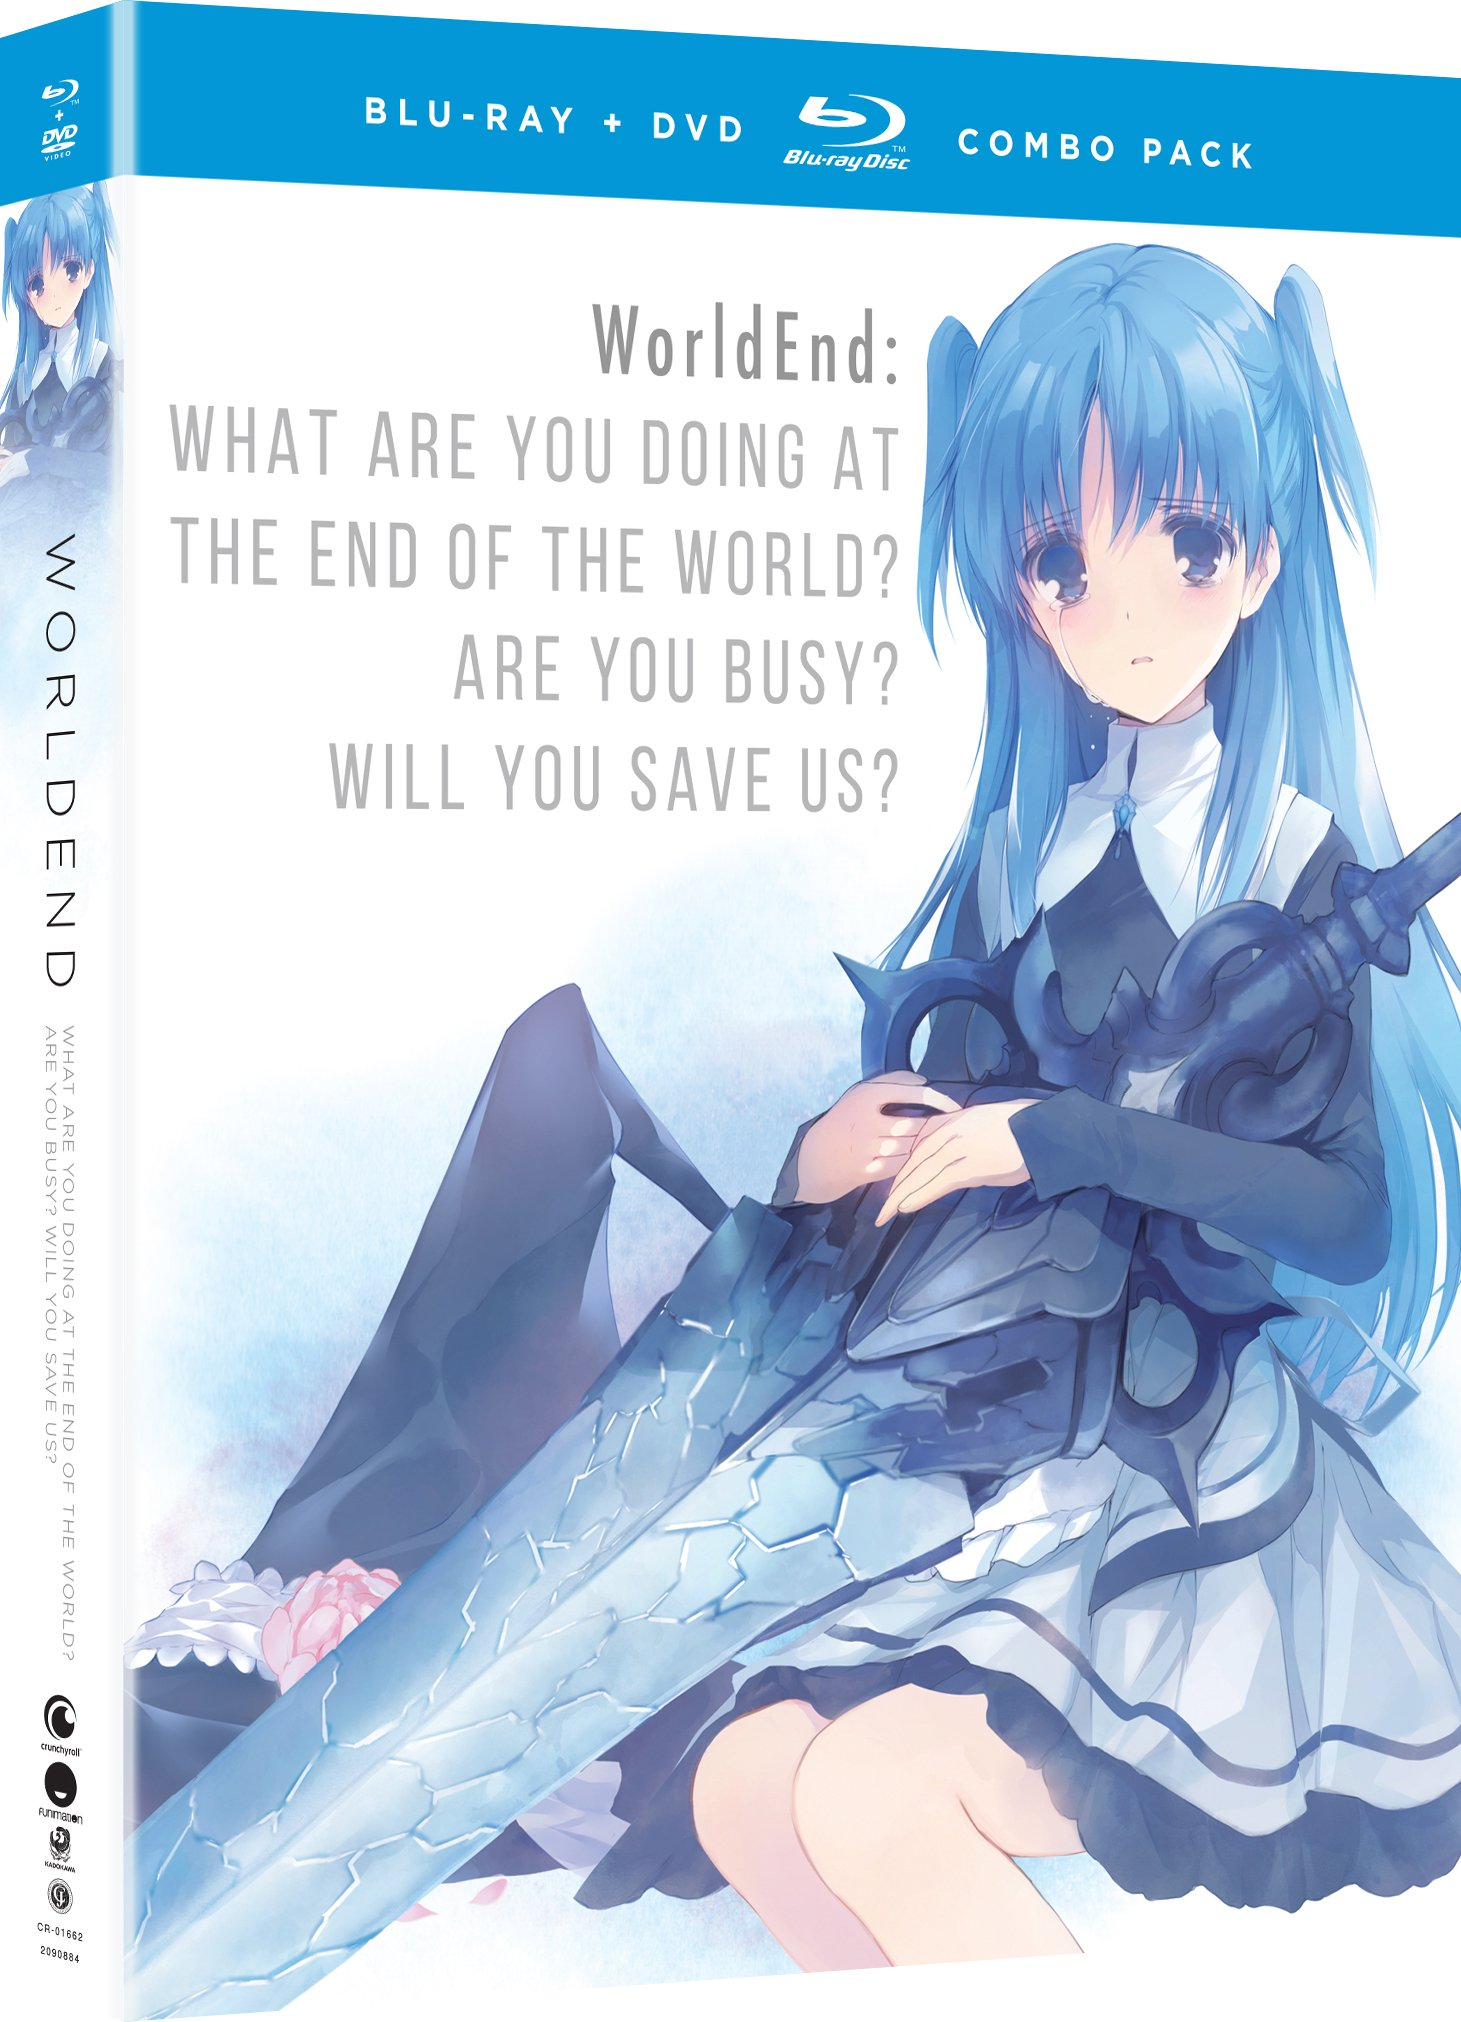 Blu-ray : Worldend: What Are You Doing At The End Of The World? Are You Busy?will You Save Us? - The Complete Series (With DVD, Boxed Set, Subtitled, Snap Case, Slipsleeve Packaging)